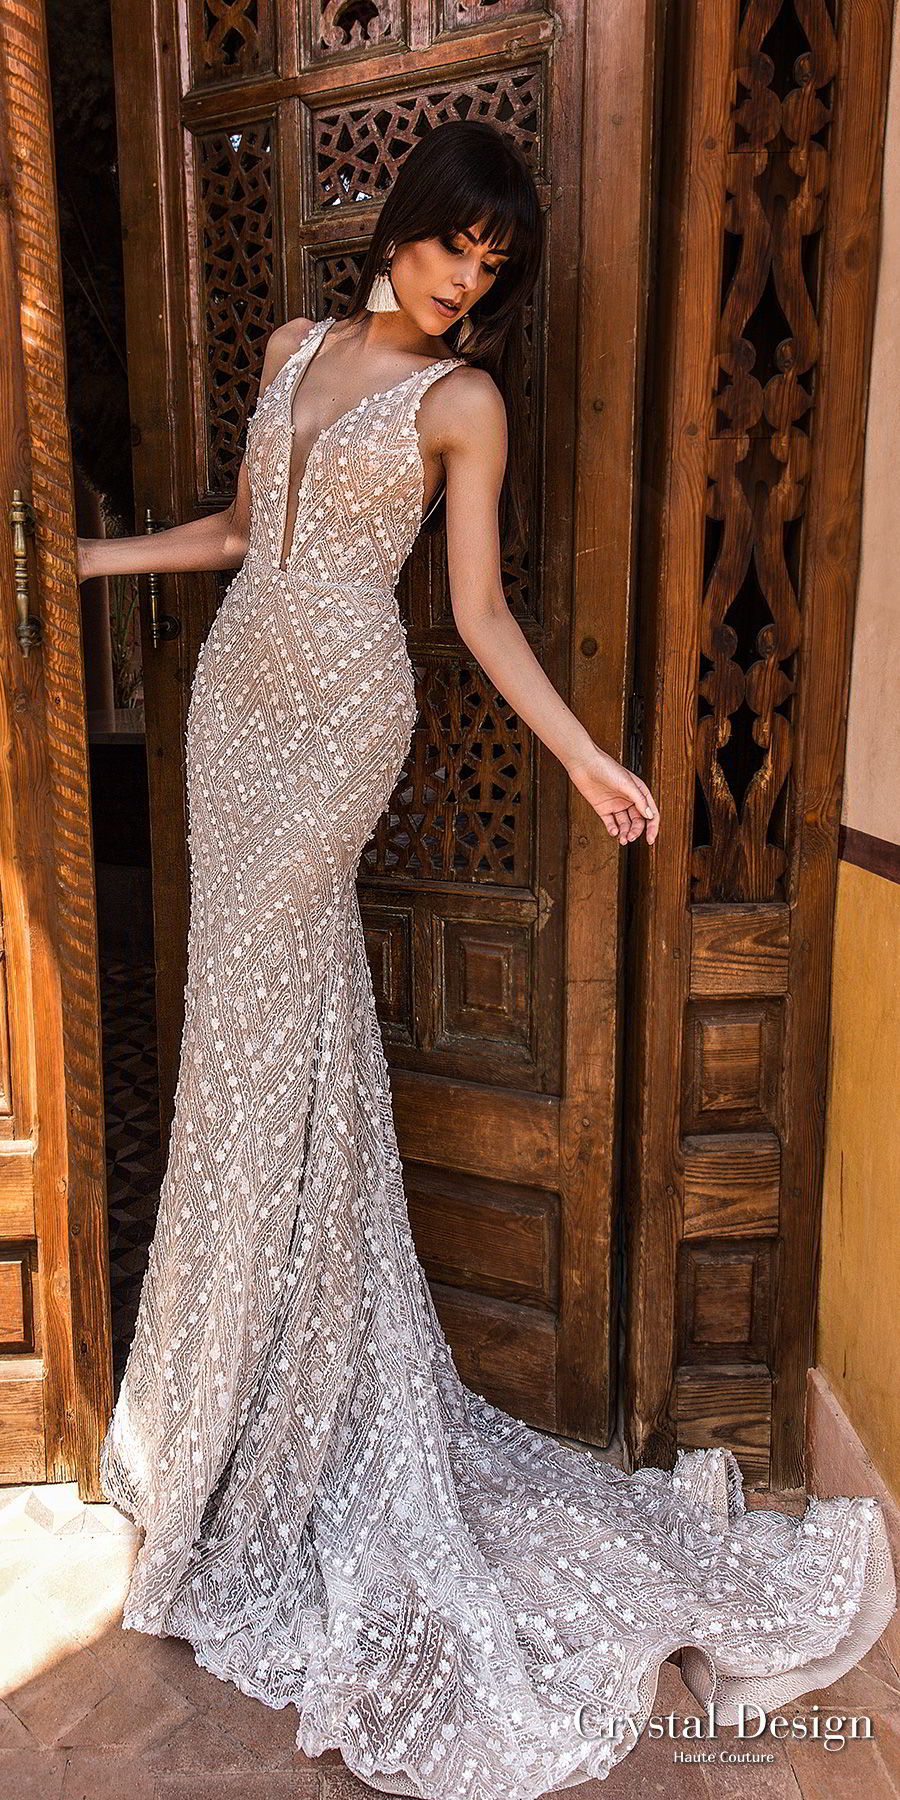 crystal design 2018 sleeveless deep plunging v neck full embellishment elegant sheath wedding dress open back chapel train (infinity) mv